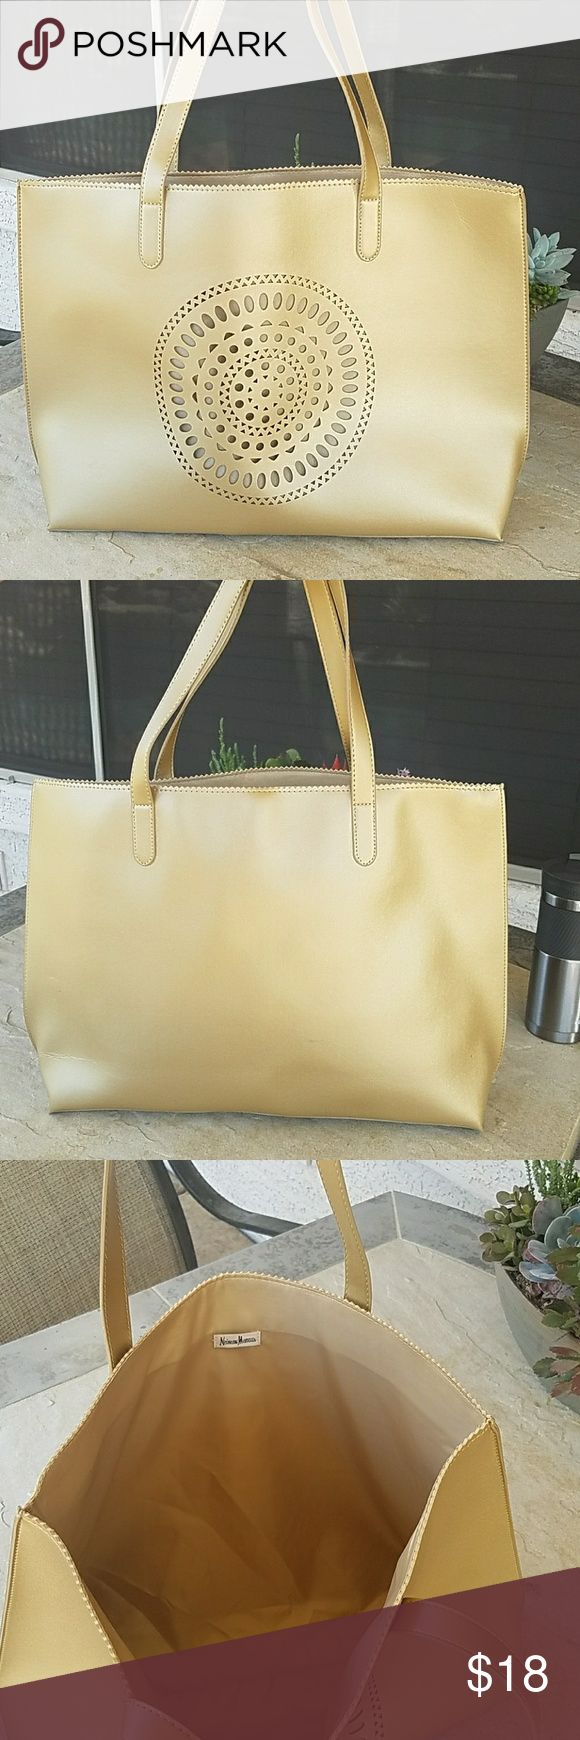 """NWOT Gold Tote Bag New without tags, large gold tote bag. Brand: Neiman Marcus. Length: 20"""", height including straps: 23"""". Does not have a zipper. A few small marks on back otherwise no damage or defects. Comes from a smoke free home. Final price unless bundled. No trades, no holds, thank you. Neiman Marcus Bags Totes"""